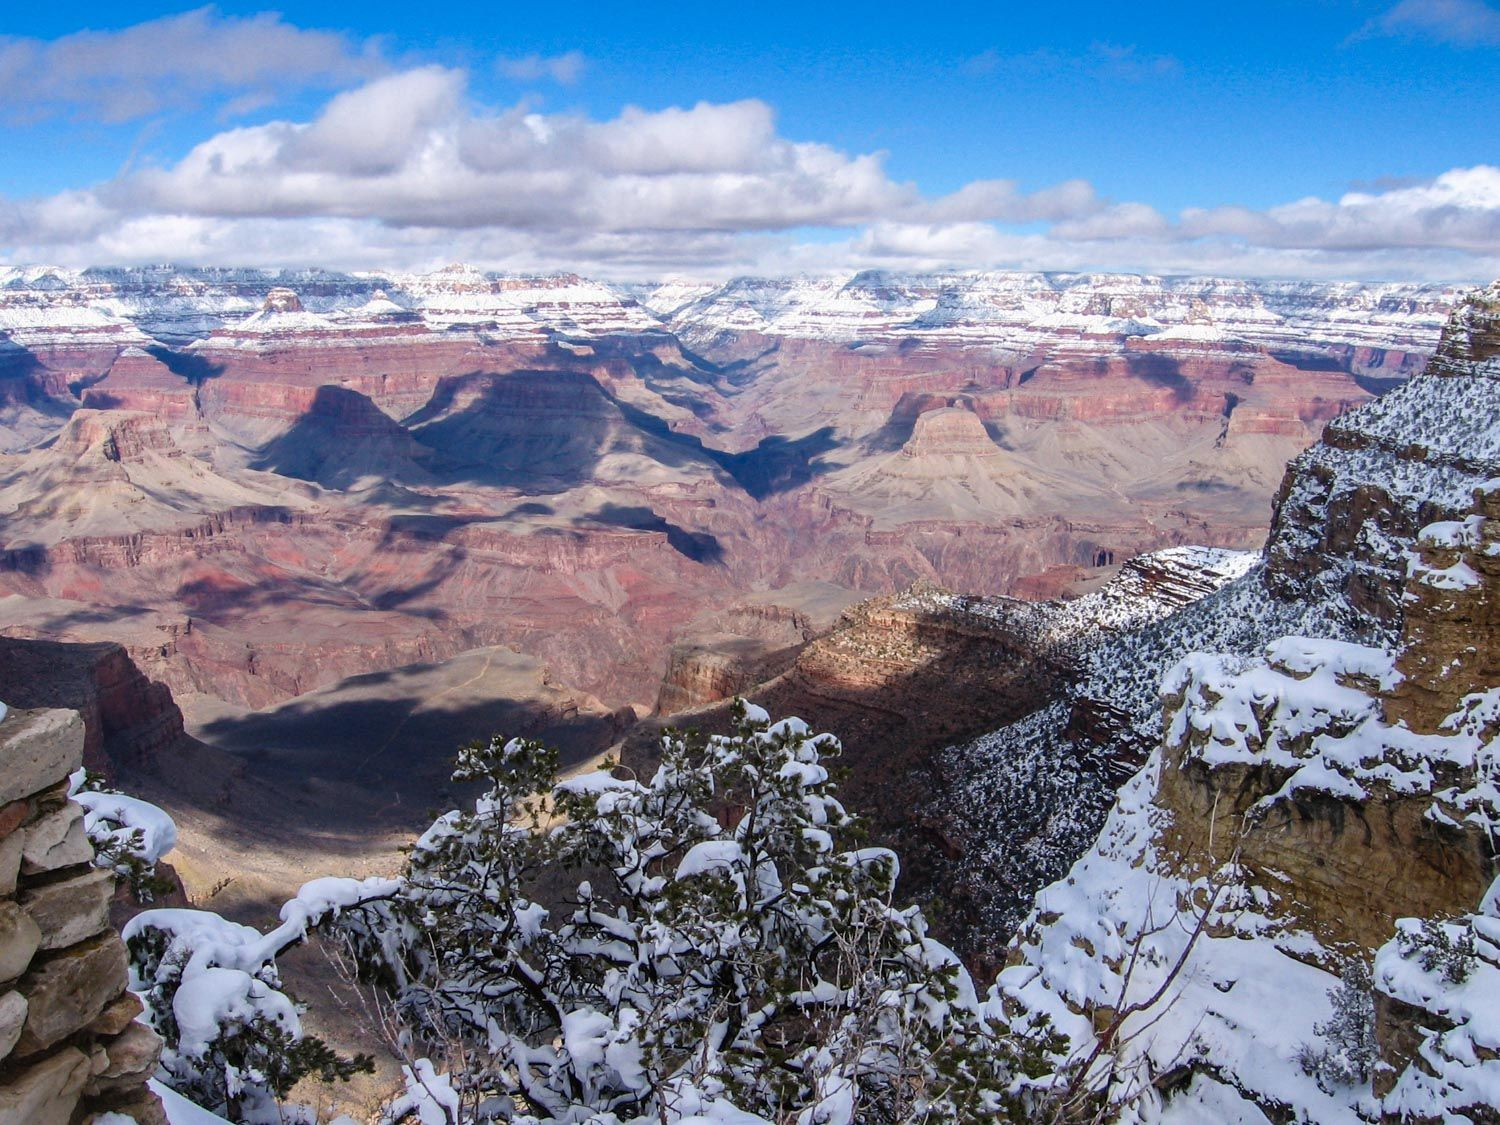 The Grand Canyon How To Get The Most From A Short Trip